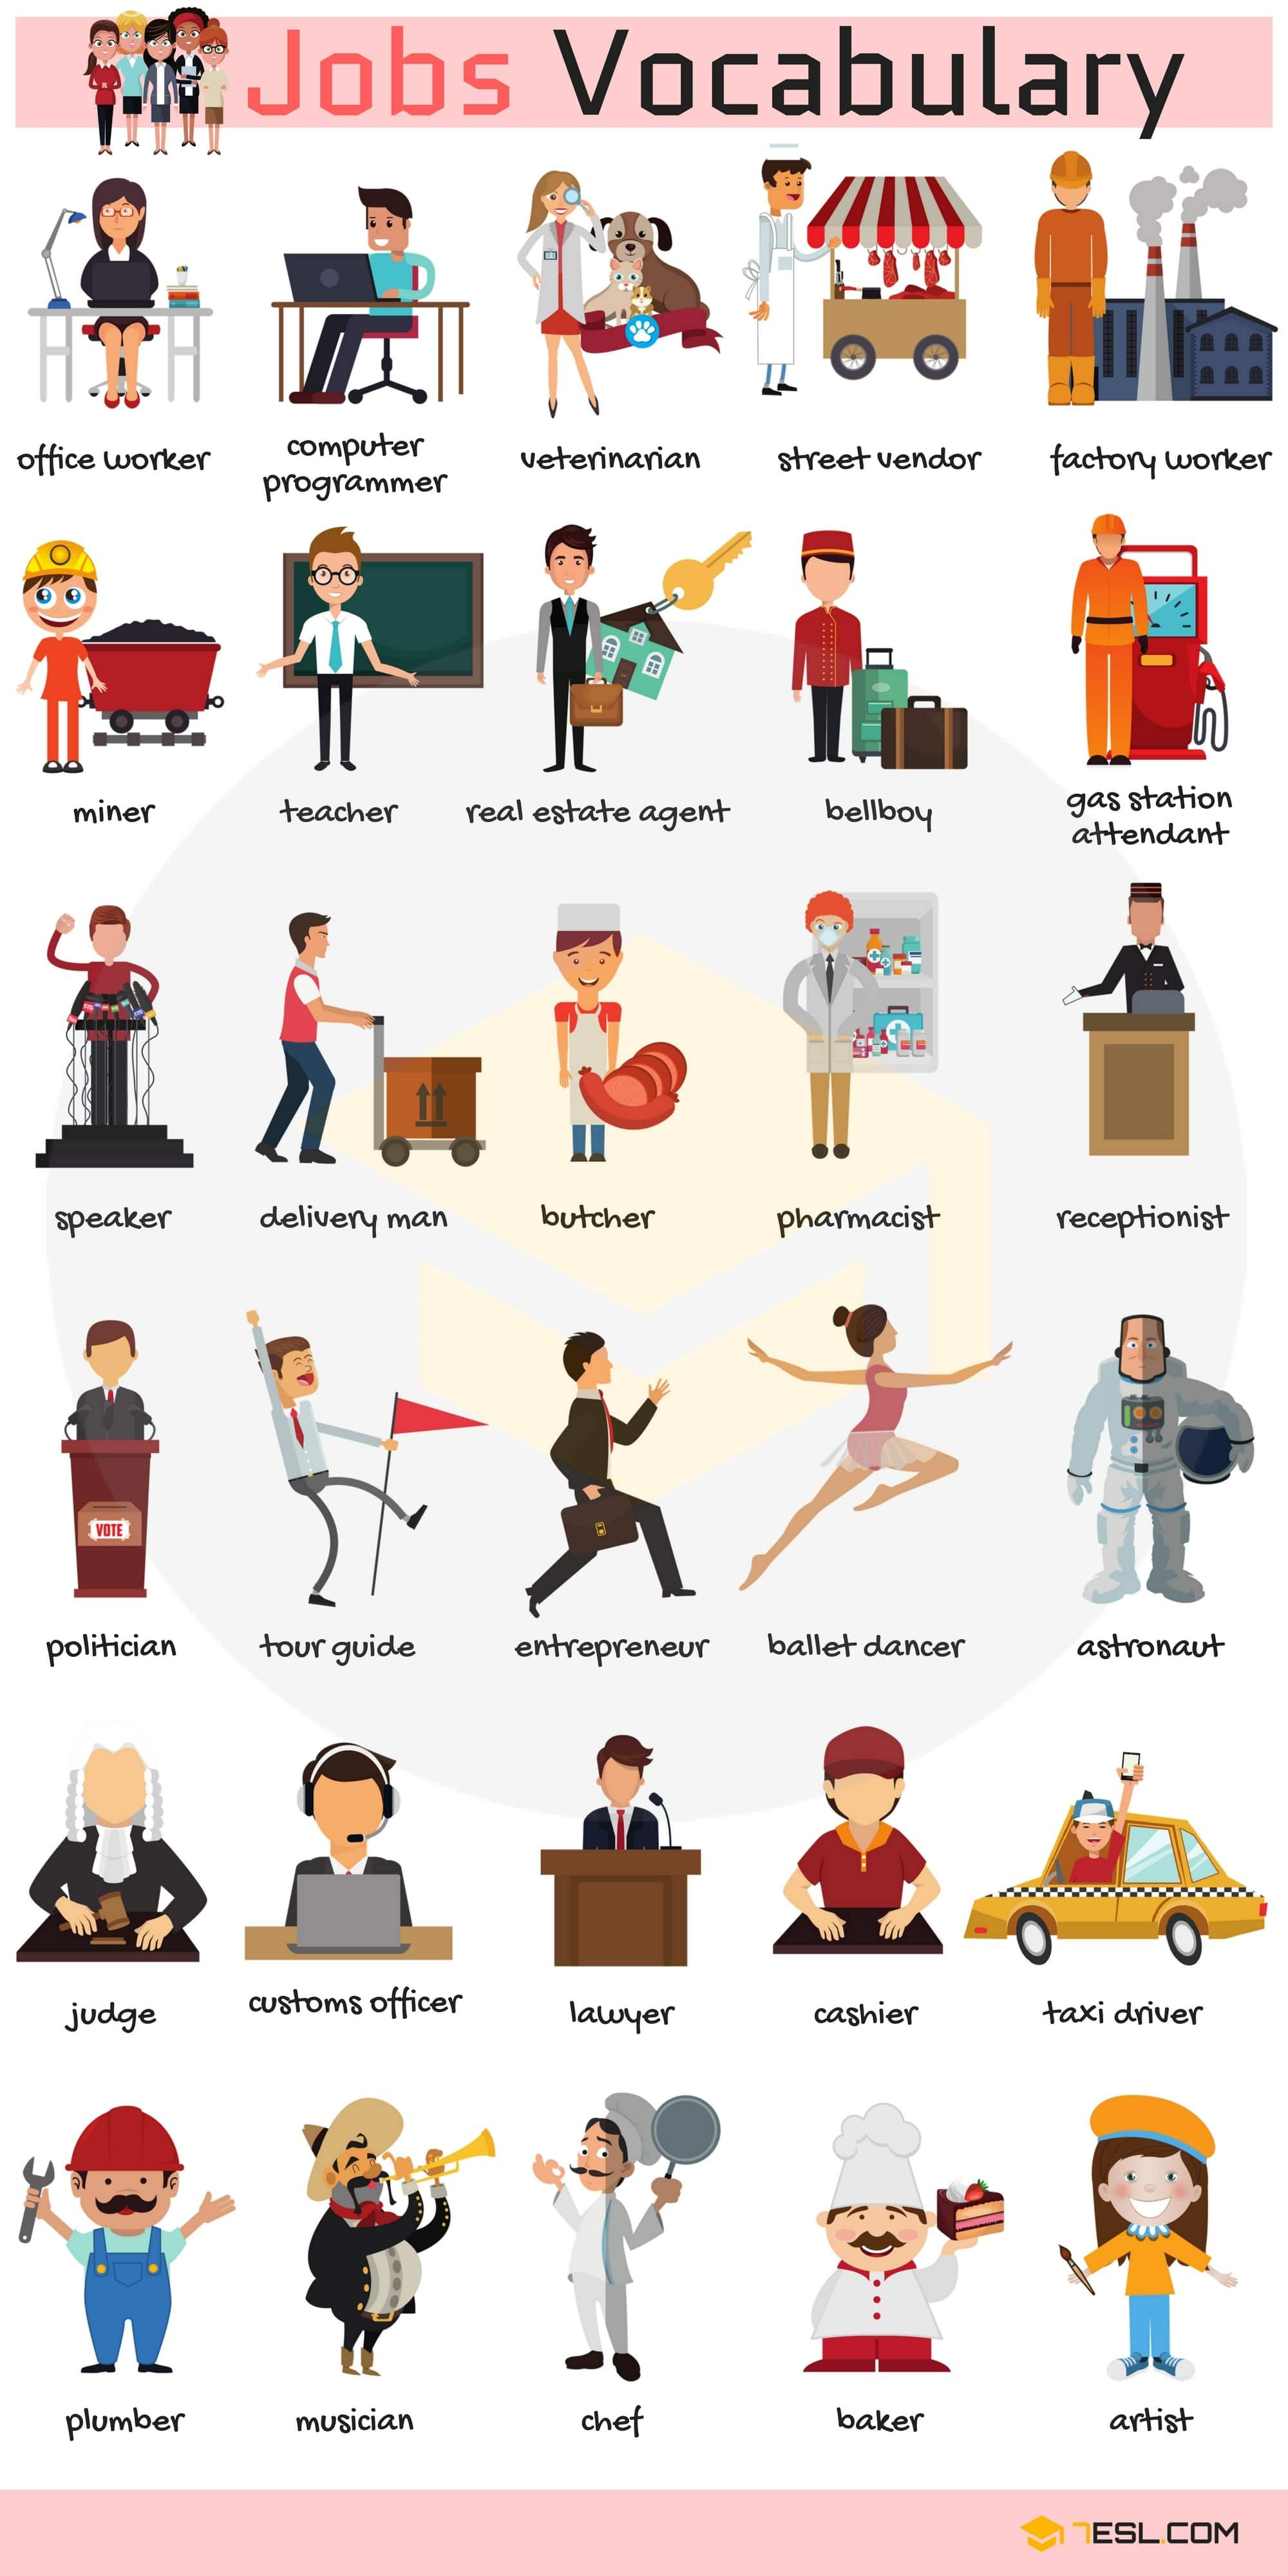 List Of Jobs And Occupations English